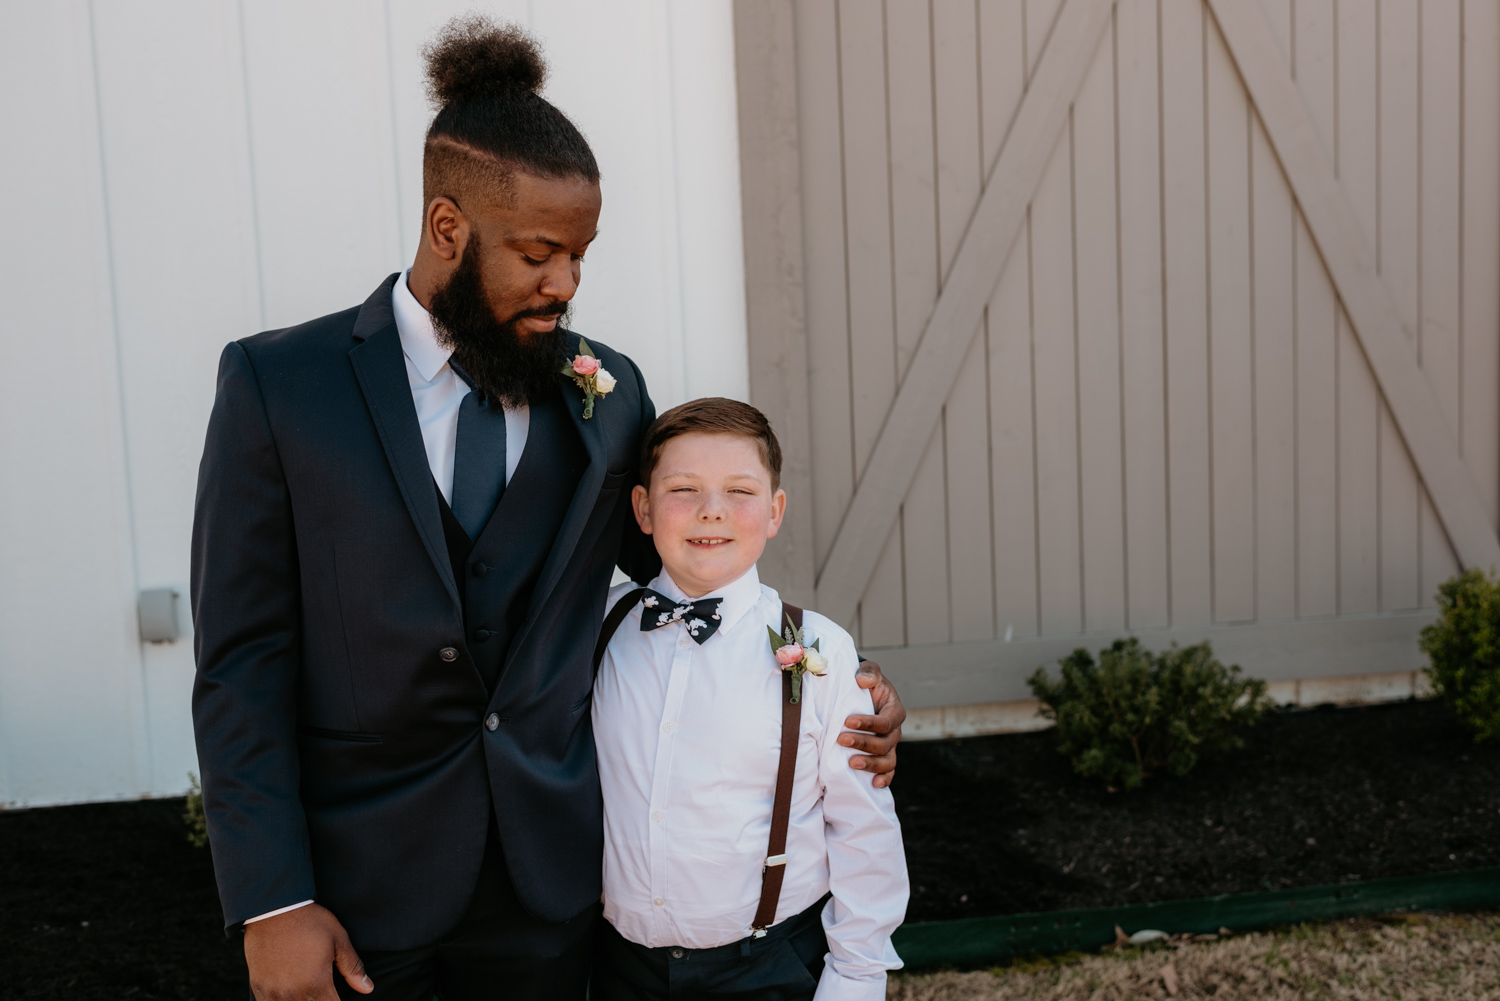 father & son wedding shot .jpg